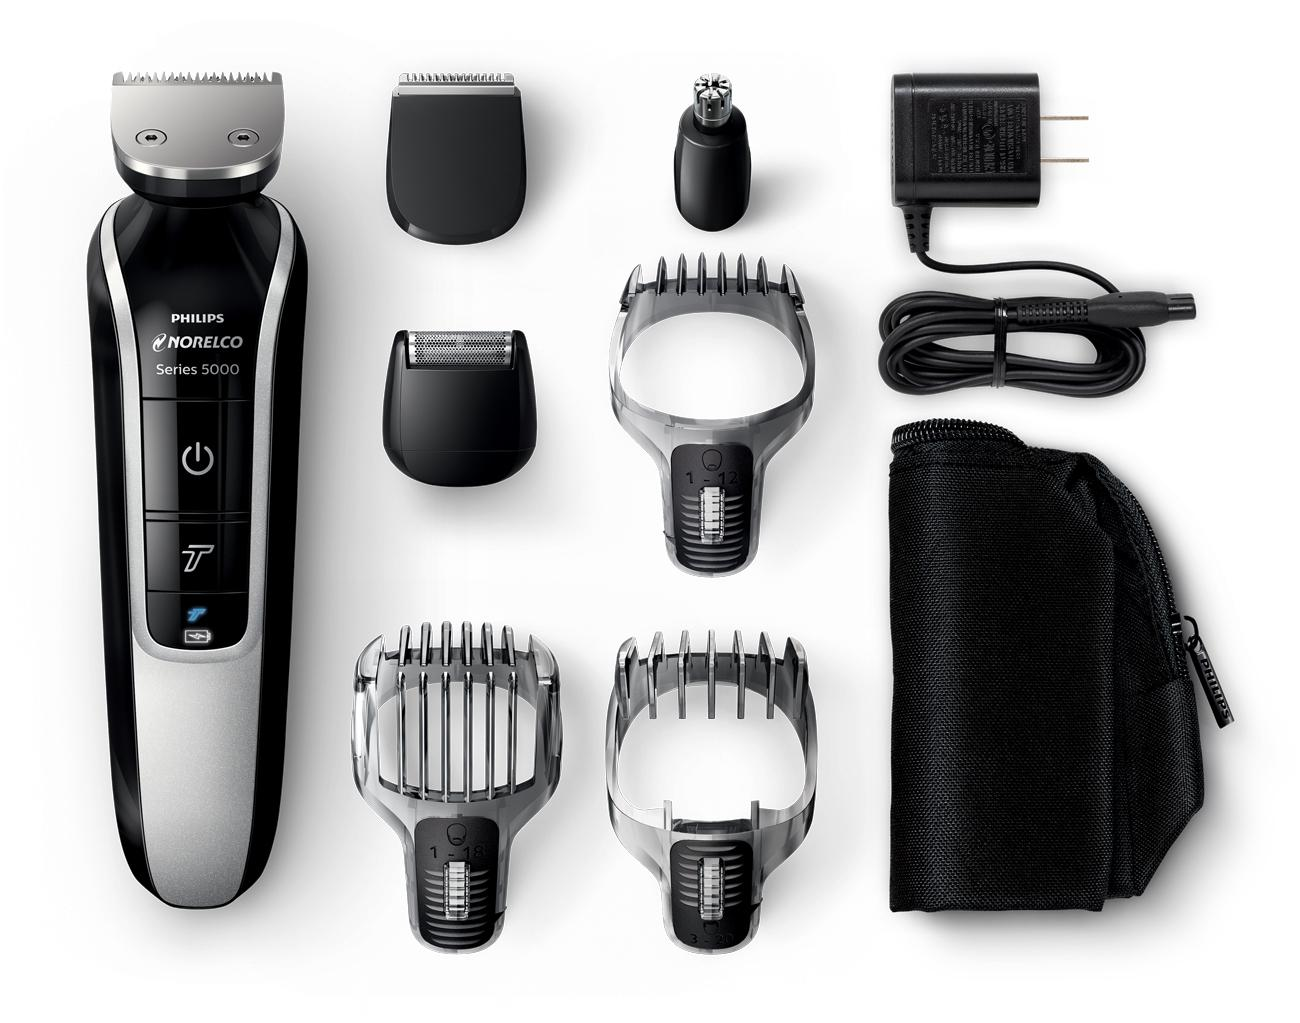 philips norelco multigroom 5100 all in one trimmer with 7. Black Bedroom Furniture Sets. Home Design Ideas